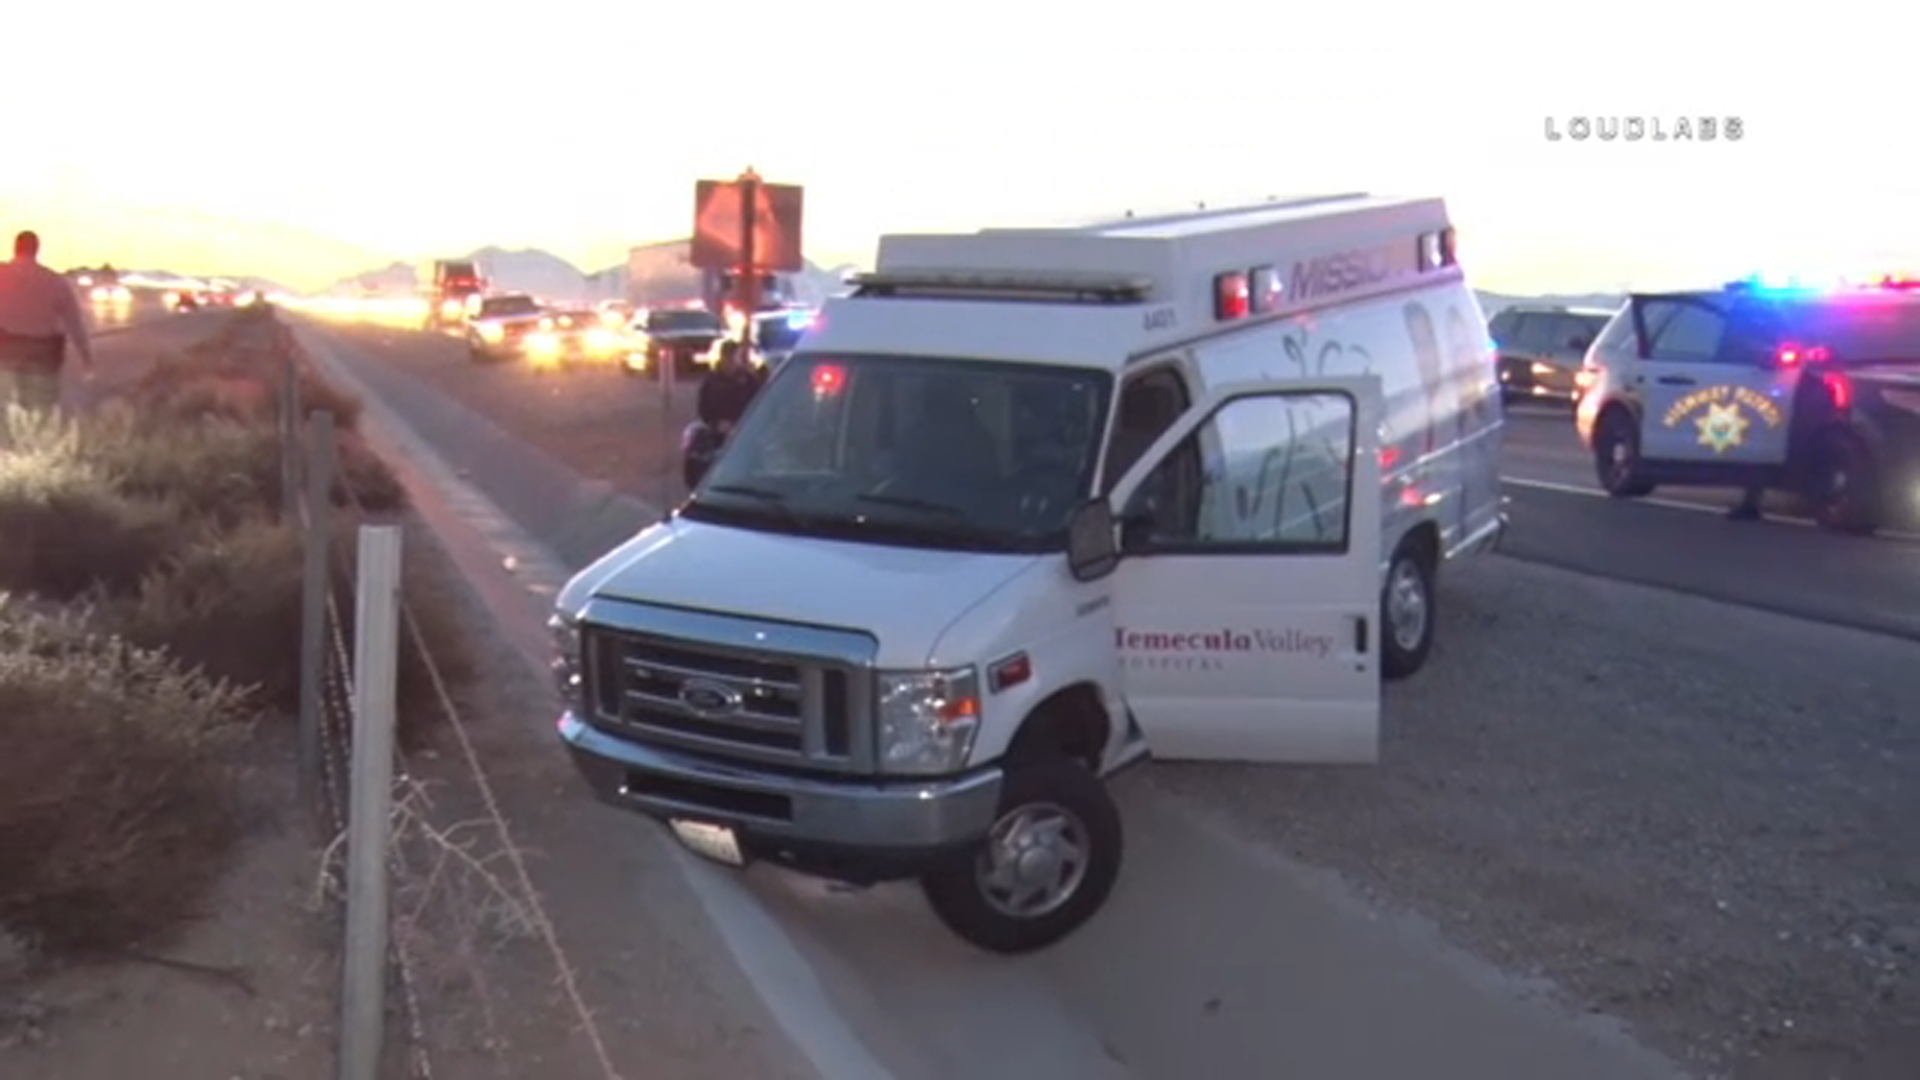 A stolen ambulance is wrecked after a wild chase ended in Hesperia on Sunday, Dec. 16, 2018.